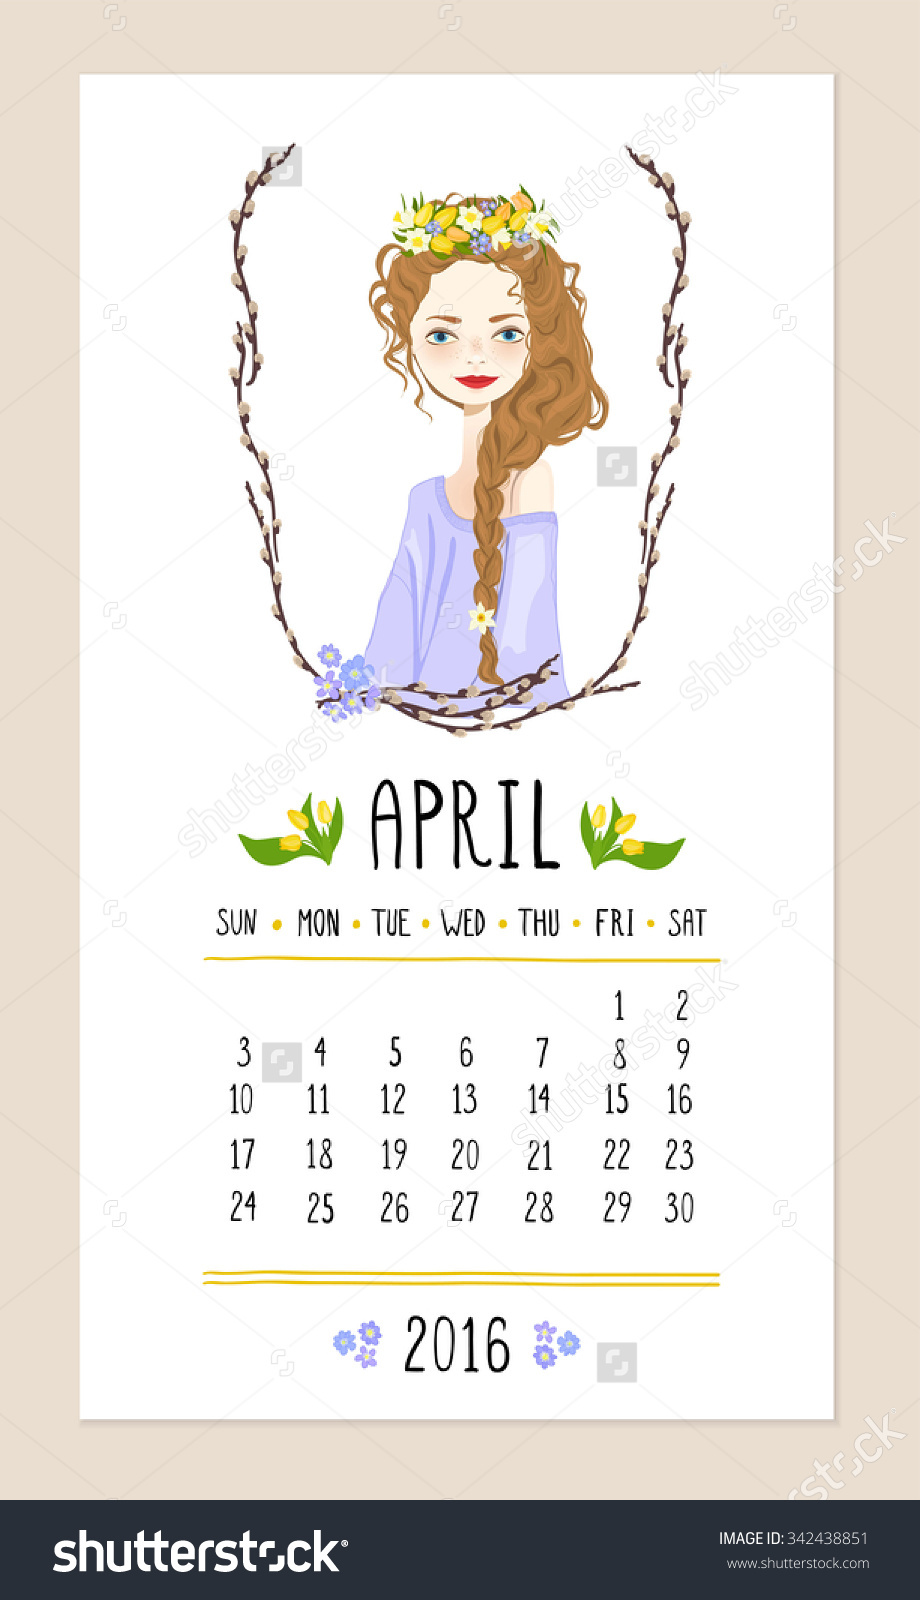 April pretty girl clipart picture royalty free download April. 2016 Calendar With Cute Girl In Wreath Of Seasonal Flowers ... picture royalty free download